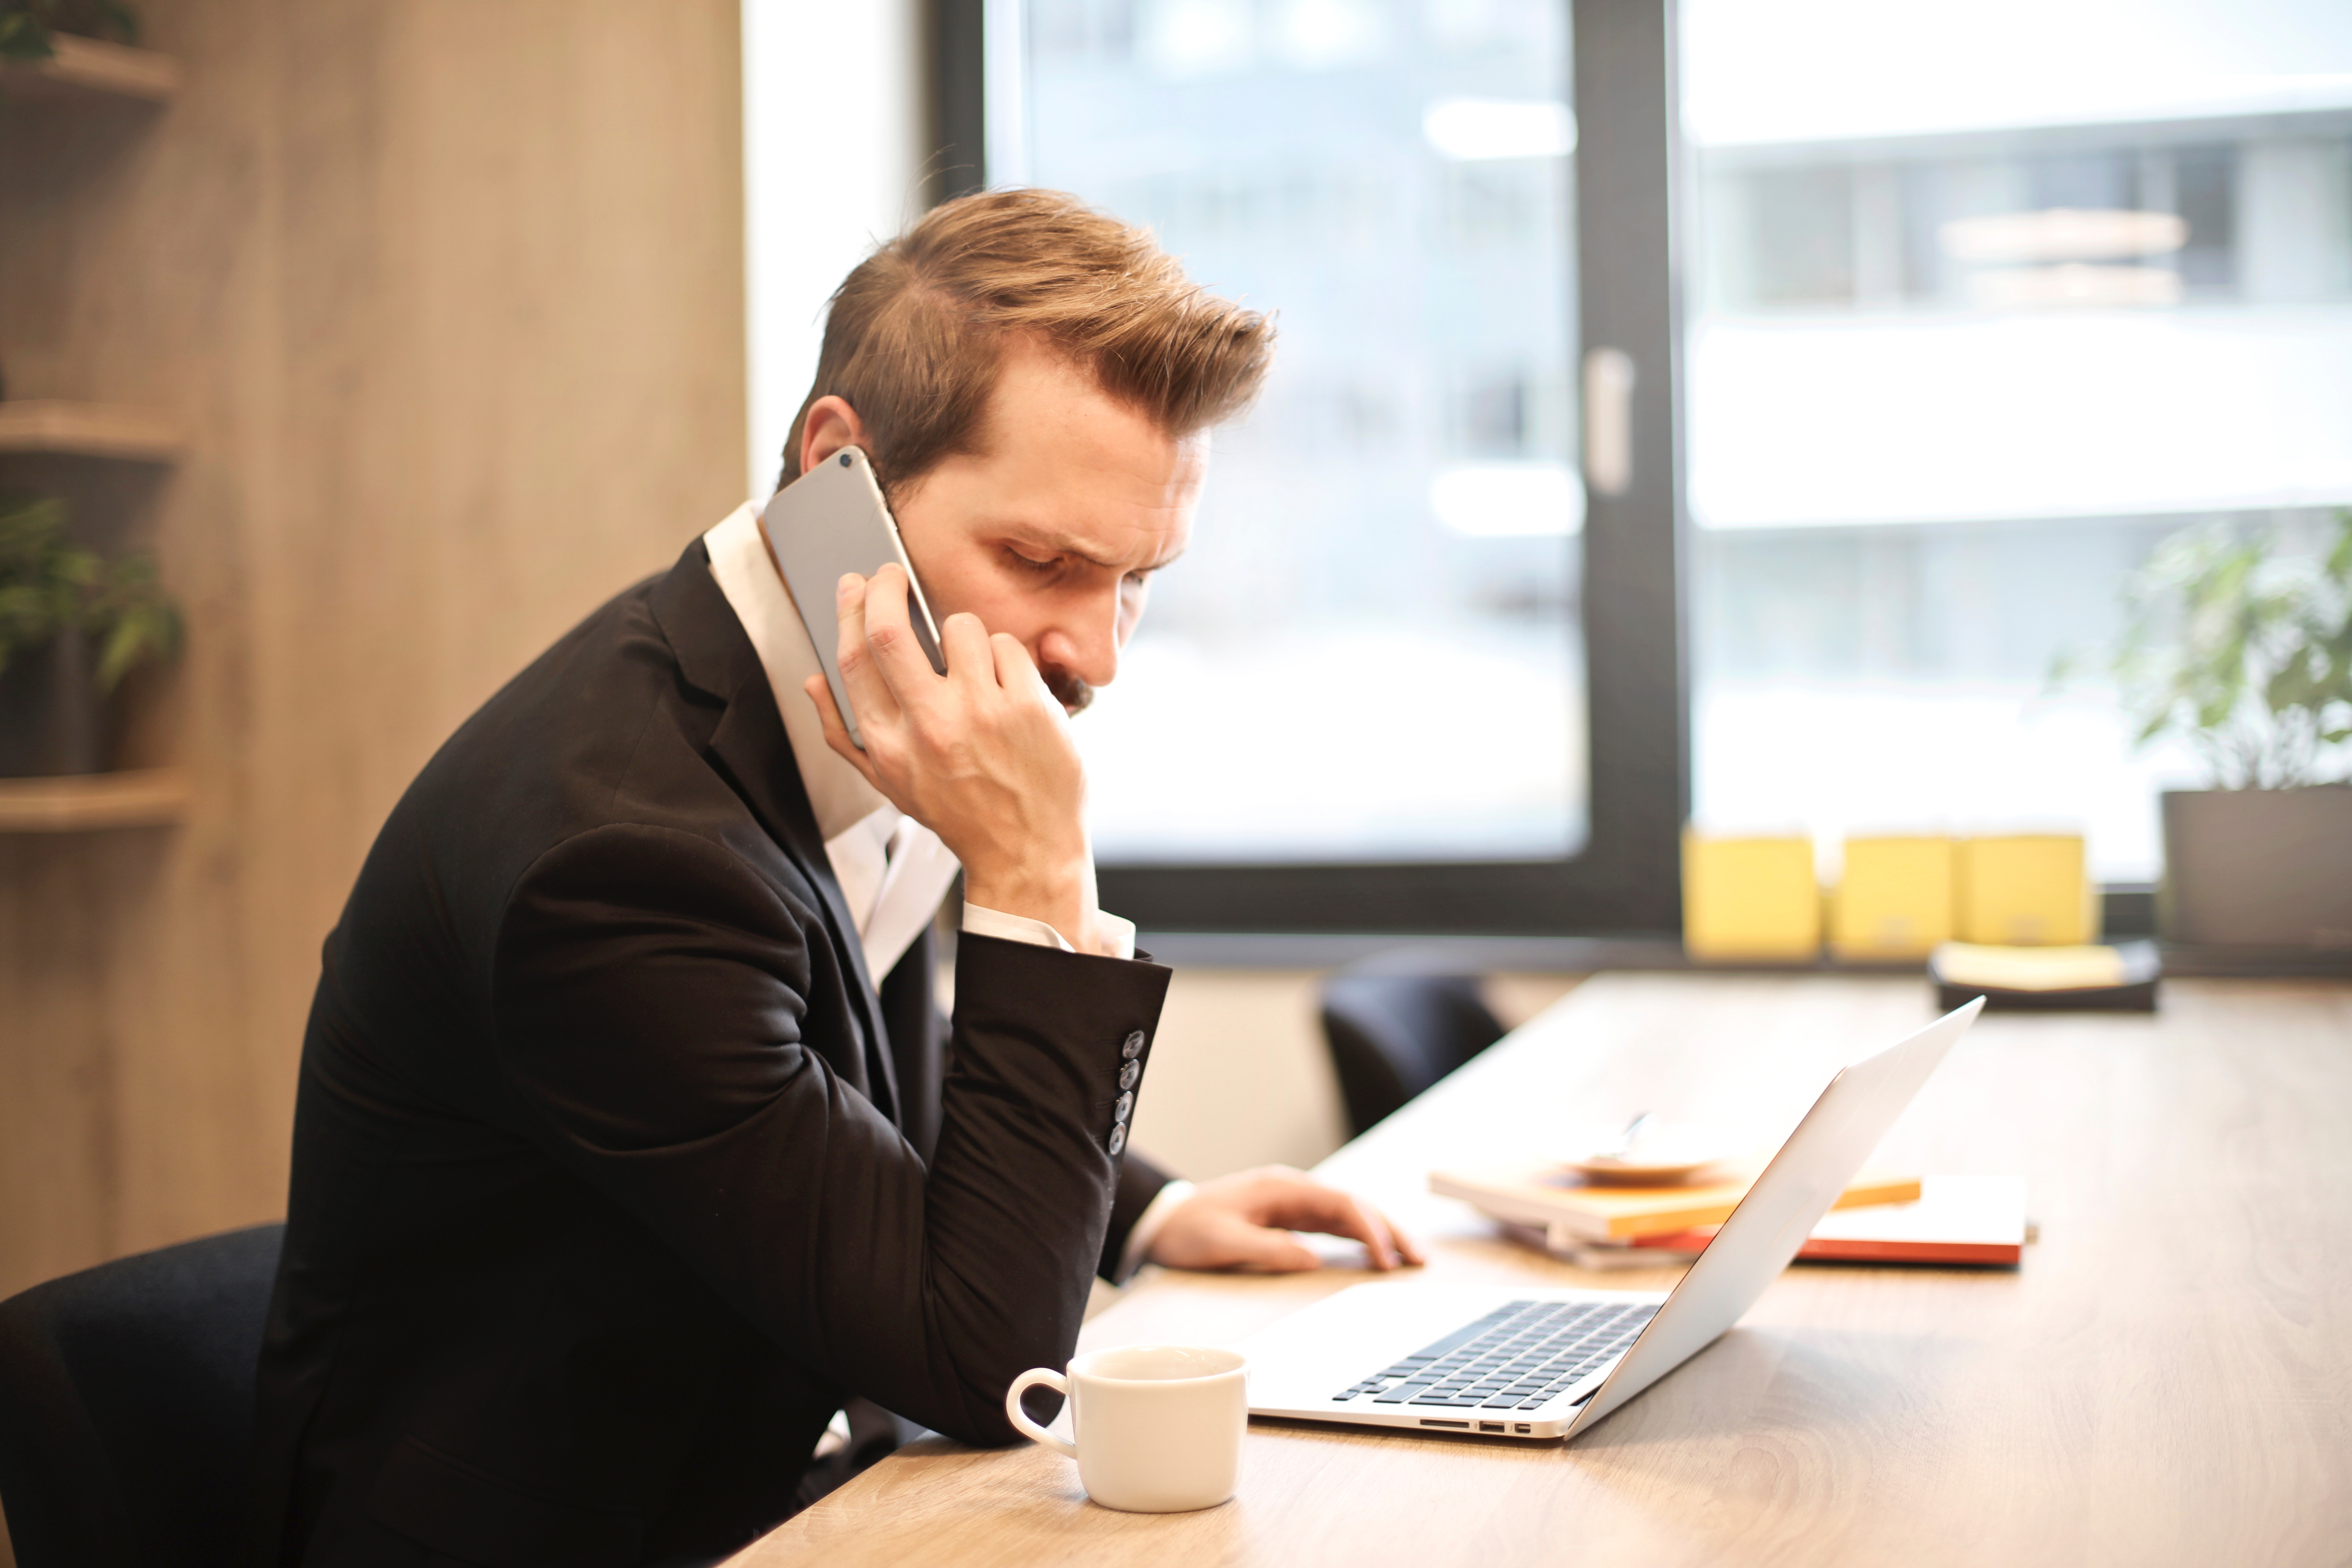 You can outsource your phone calls to help your small business